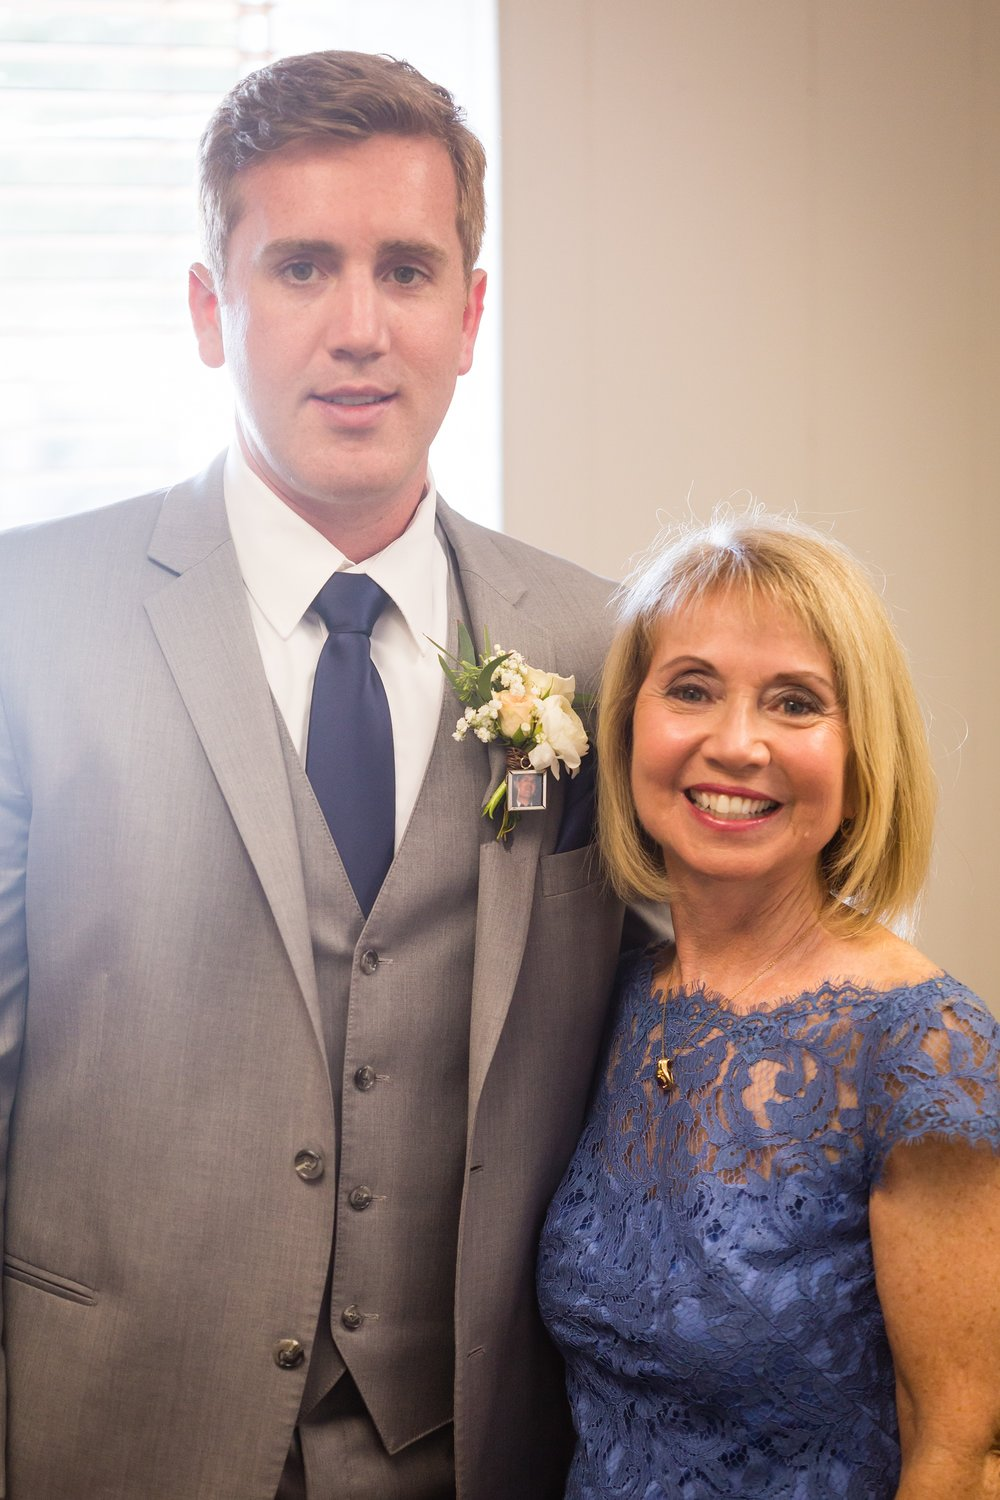 Brandon_Shafer_Photography_Amber_Ryan_Wedding_0023.jpg